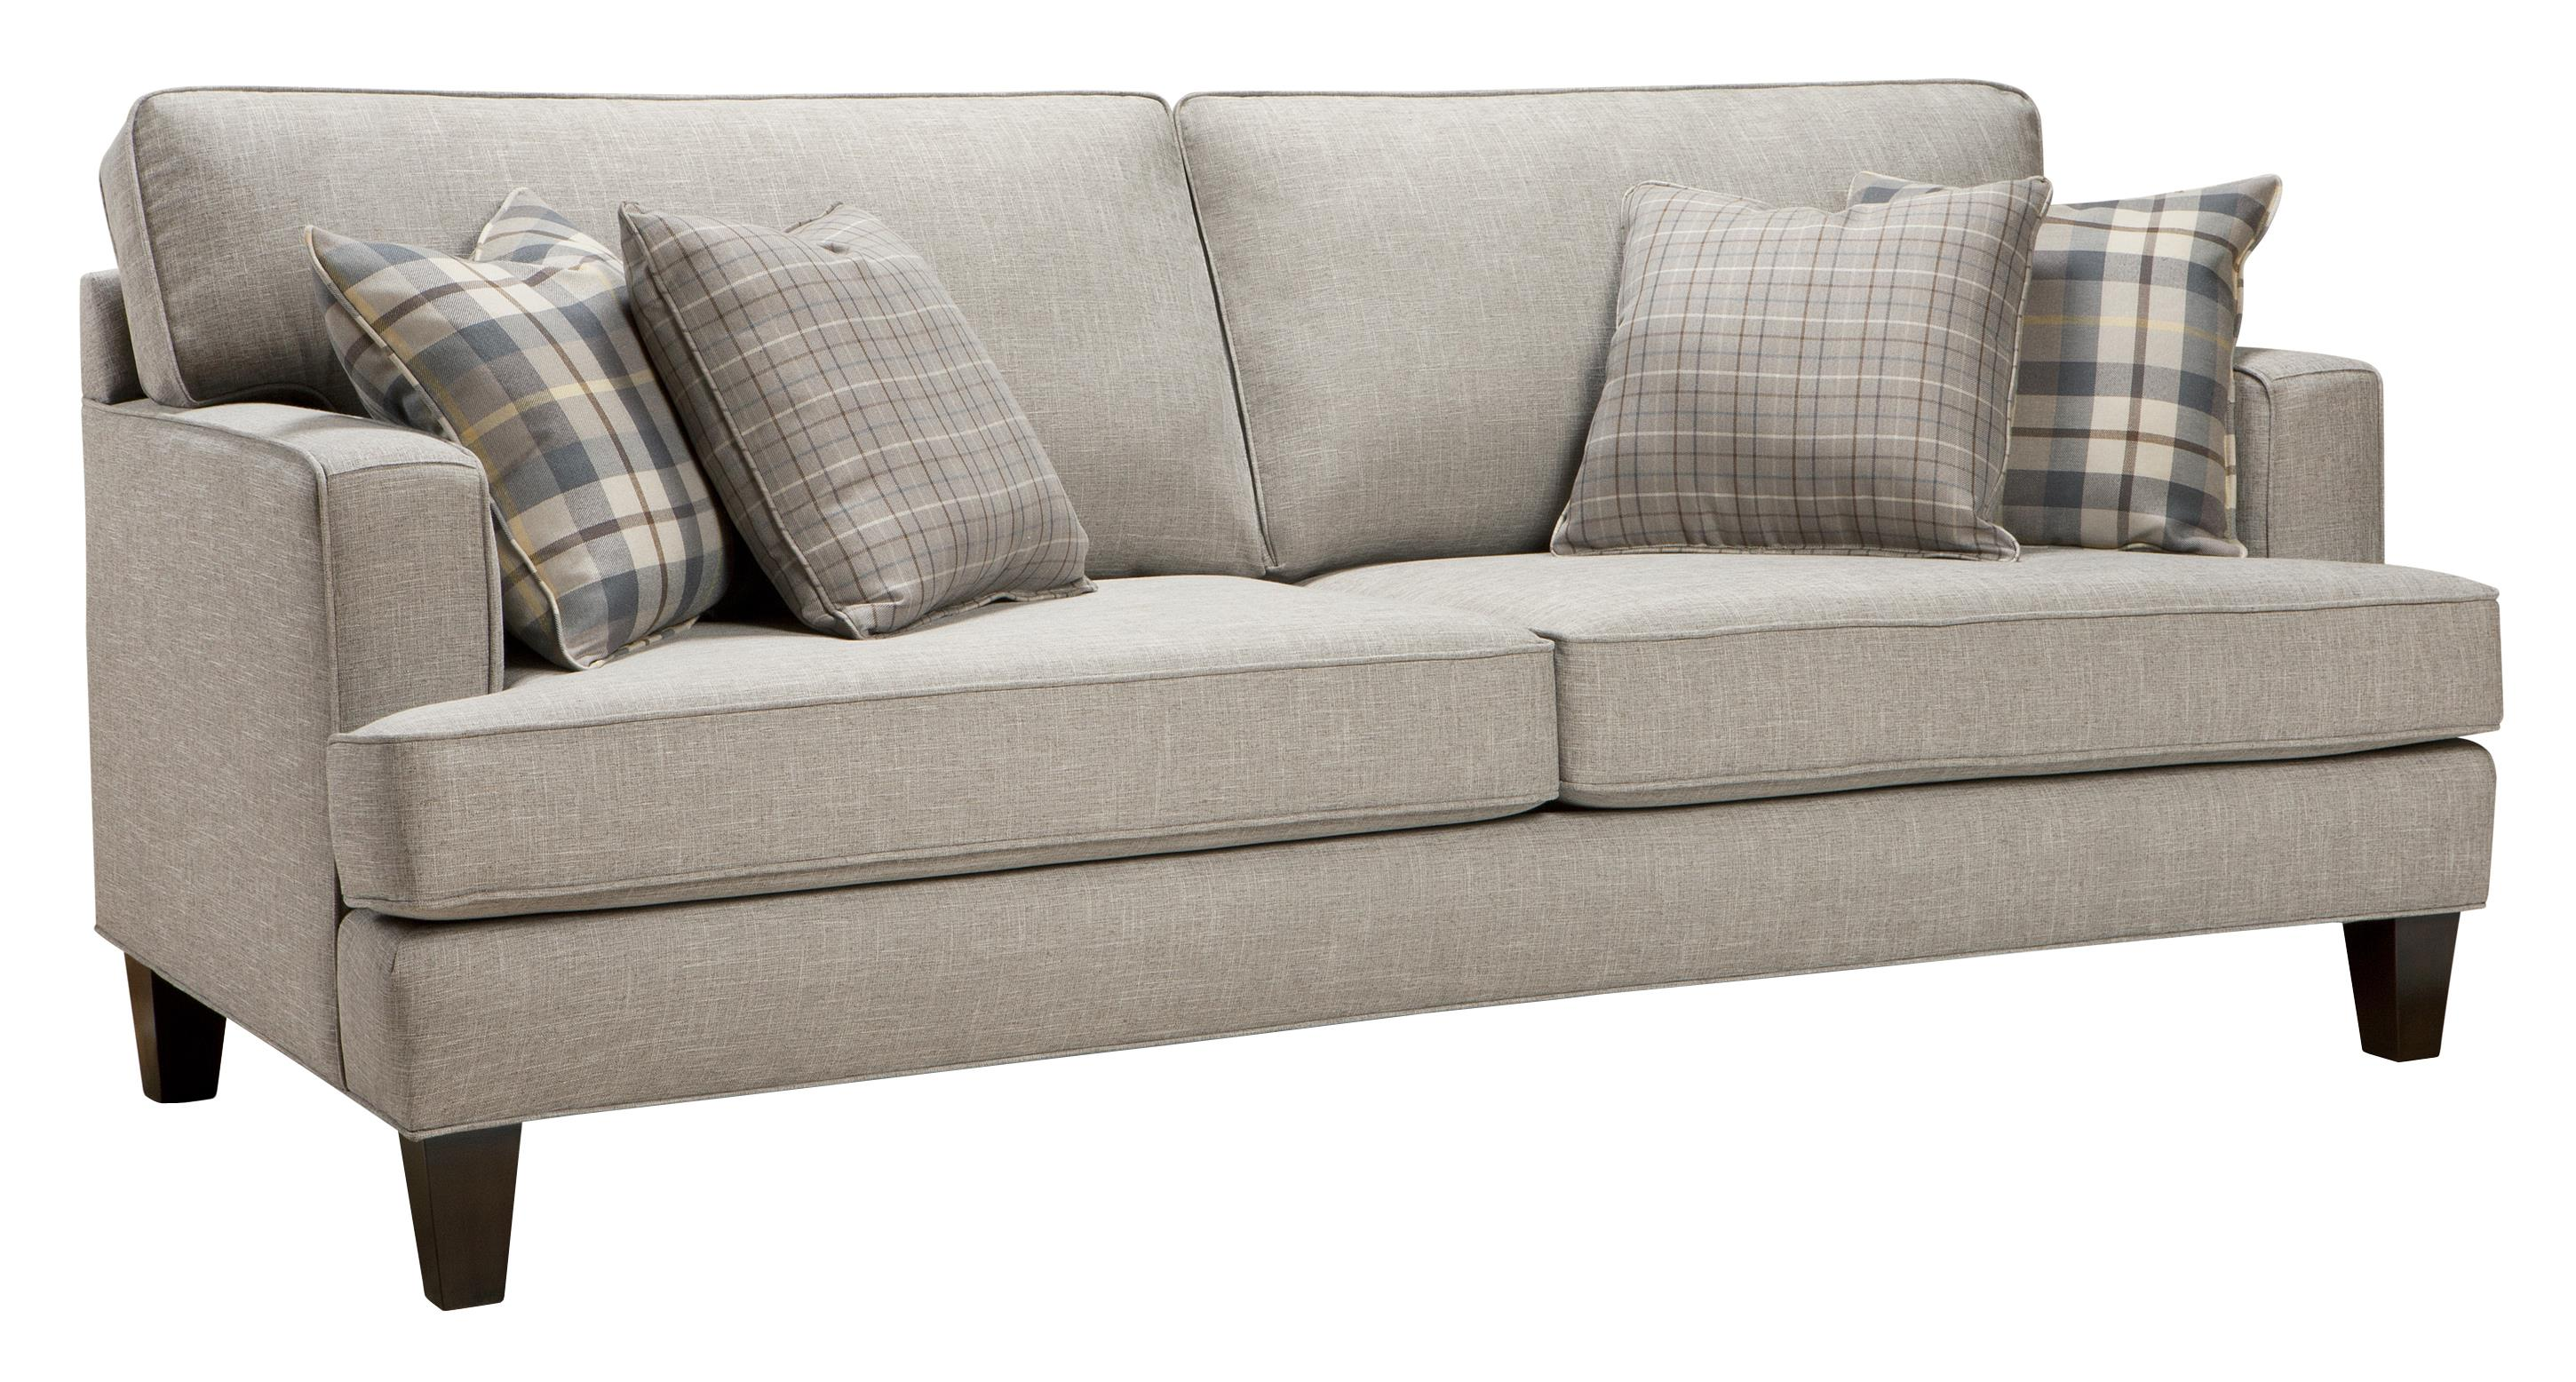 Superstyle 9671 Two Seat Sofa - Item Number: 9671-Sofa